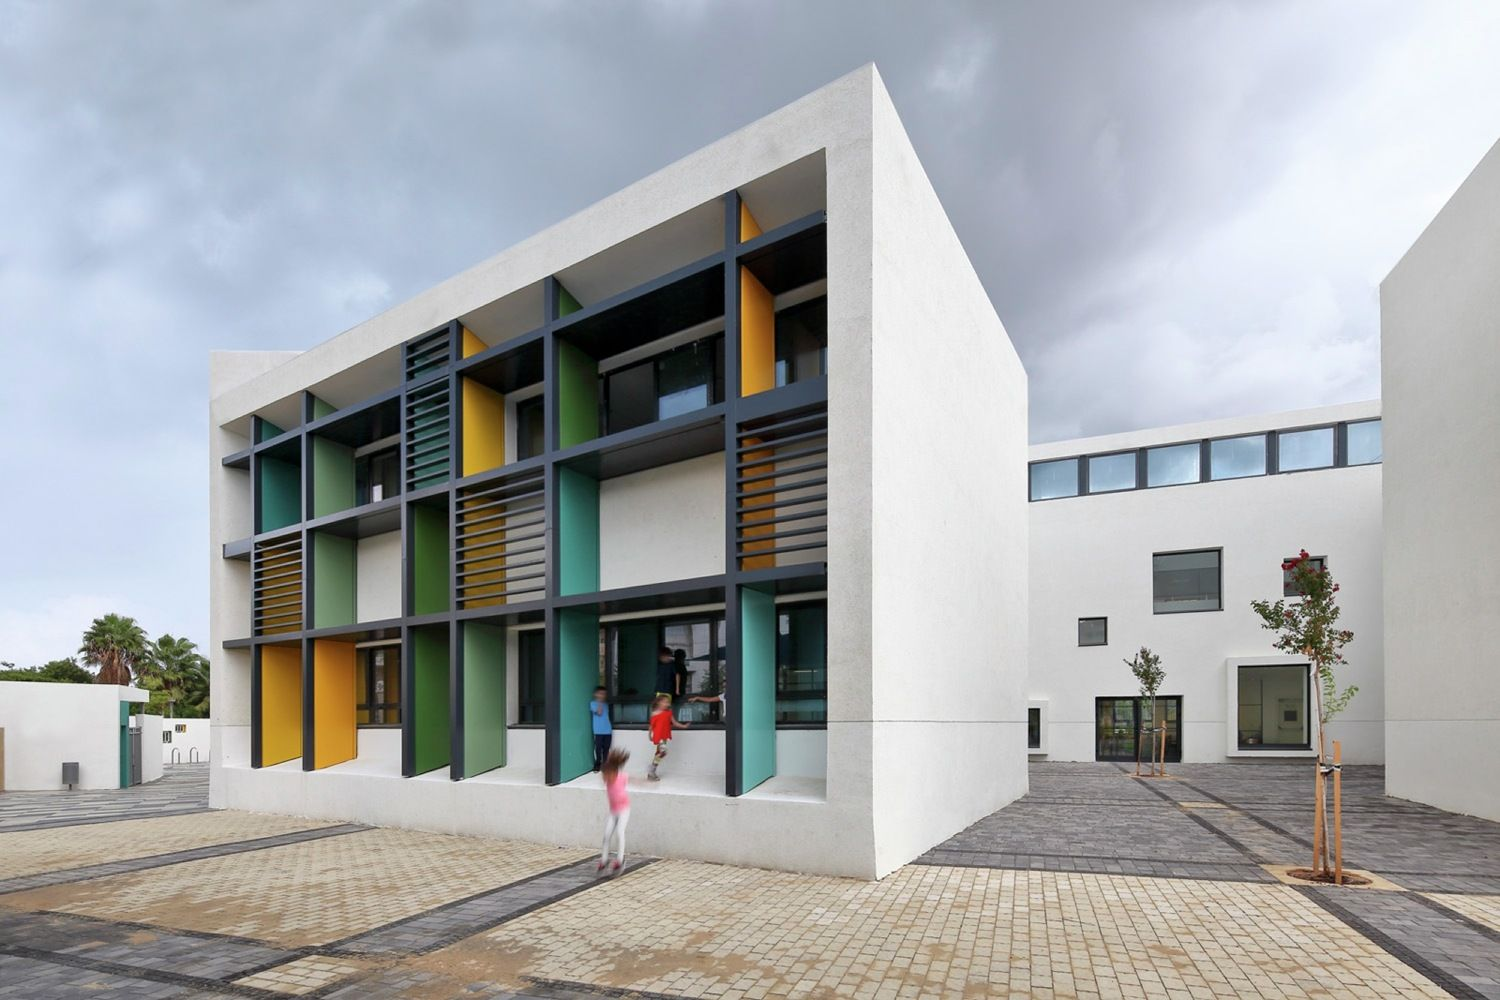 gallery of elementary school in tel aviv auerbach halevy architects 1 israel schools in. Black Bedroom Furniture Sets. Home Design Ideas